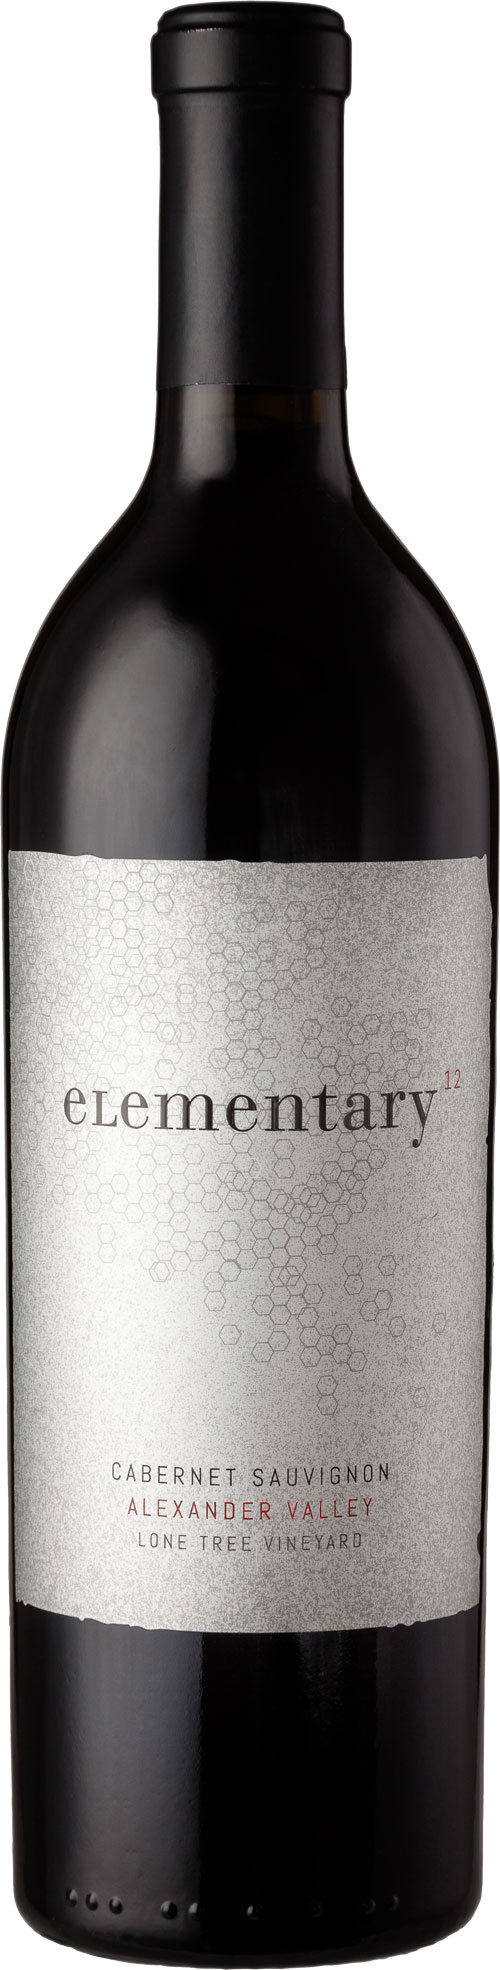 2016 Elementary by Nick Goldschmidt Alexander Valley Cabernet Sauvignon Railyard Vineyard